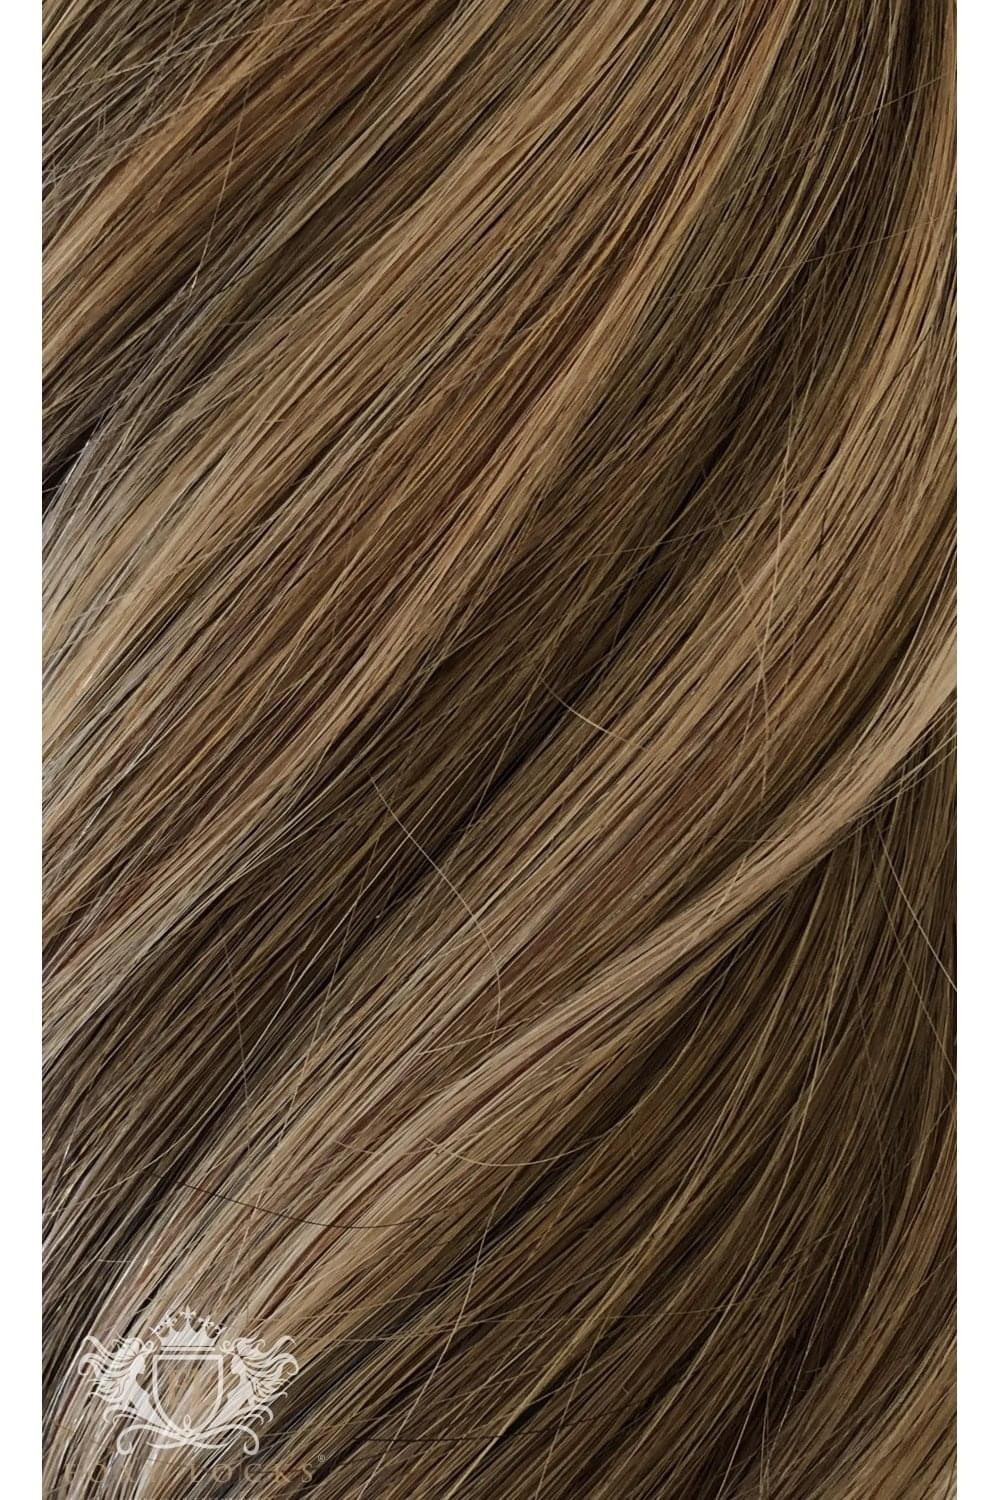 Sunkissed Highlights Regular Seamless Clip In Hair Extensions 125g